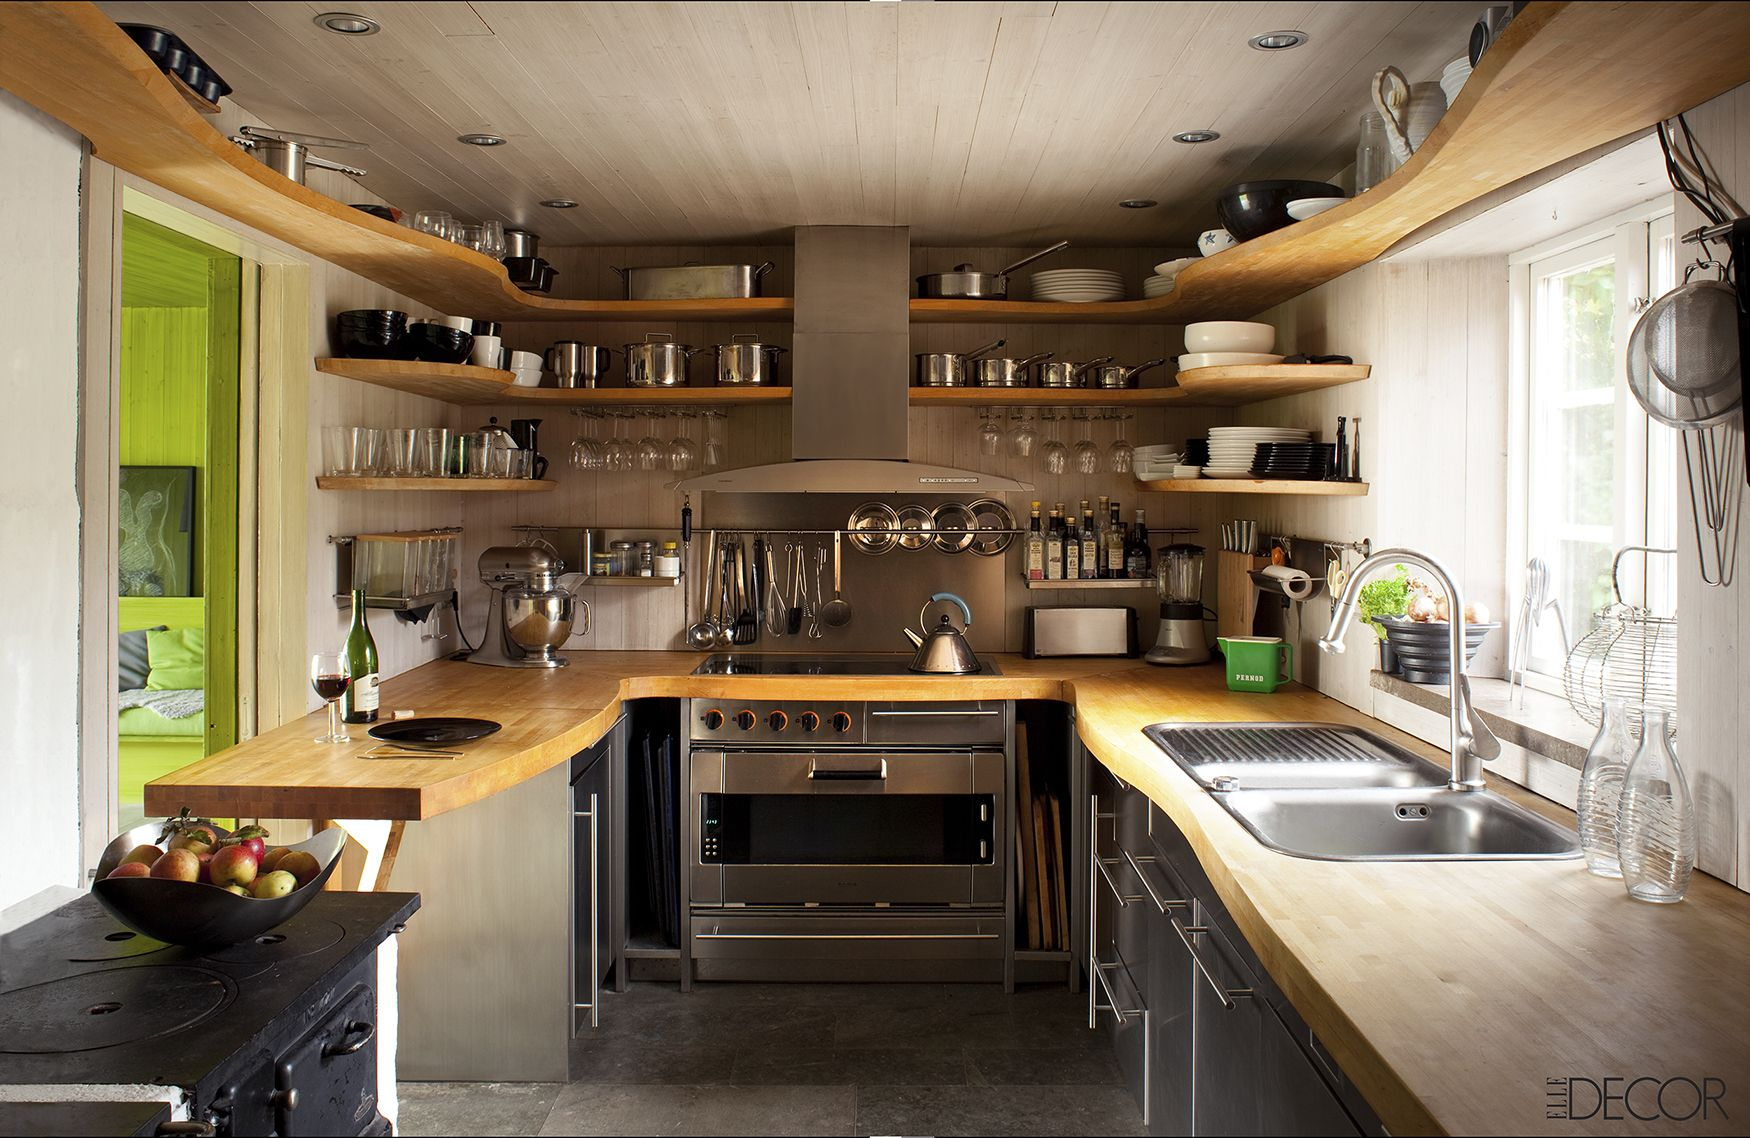 Kitchens Ideas 50 small kitchen design ideas - decorating tiny kitchens